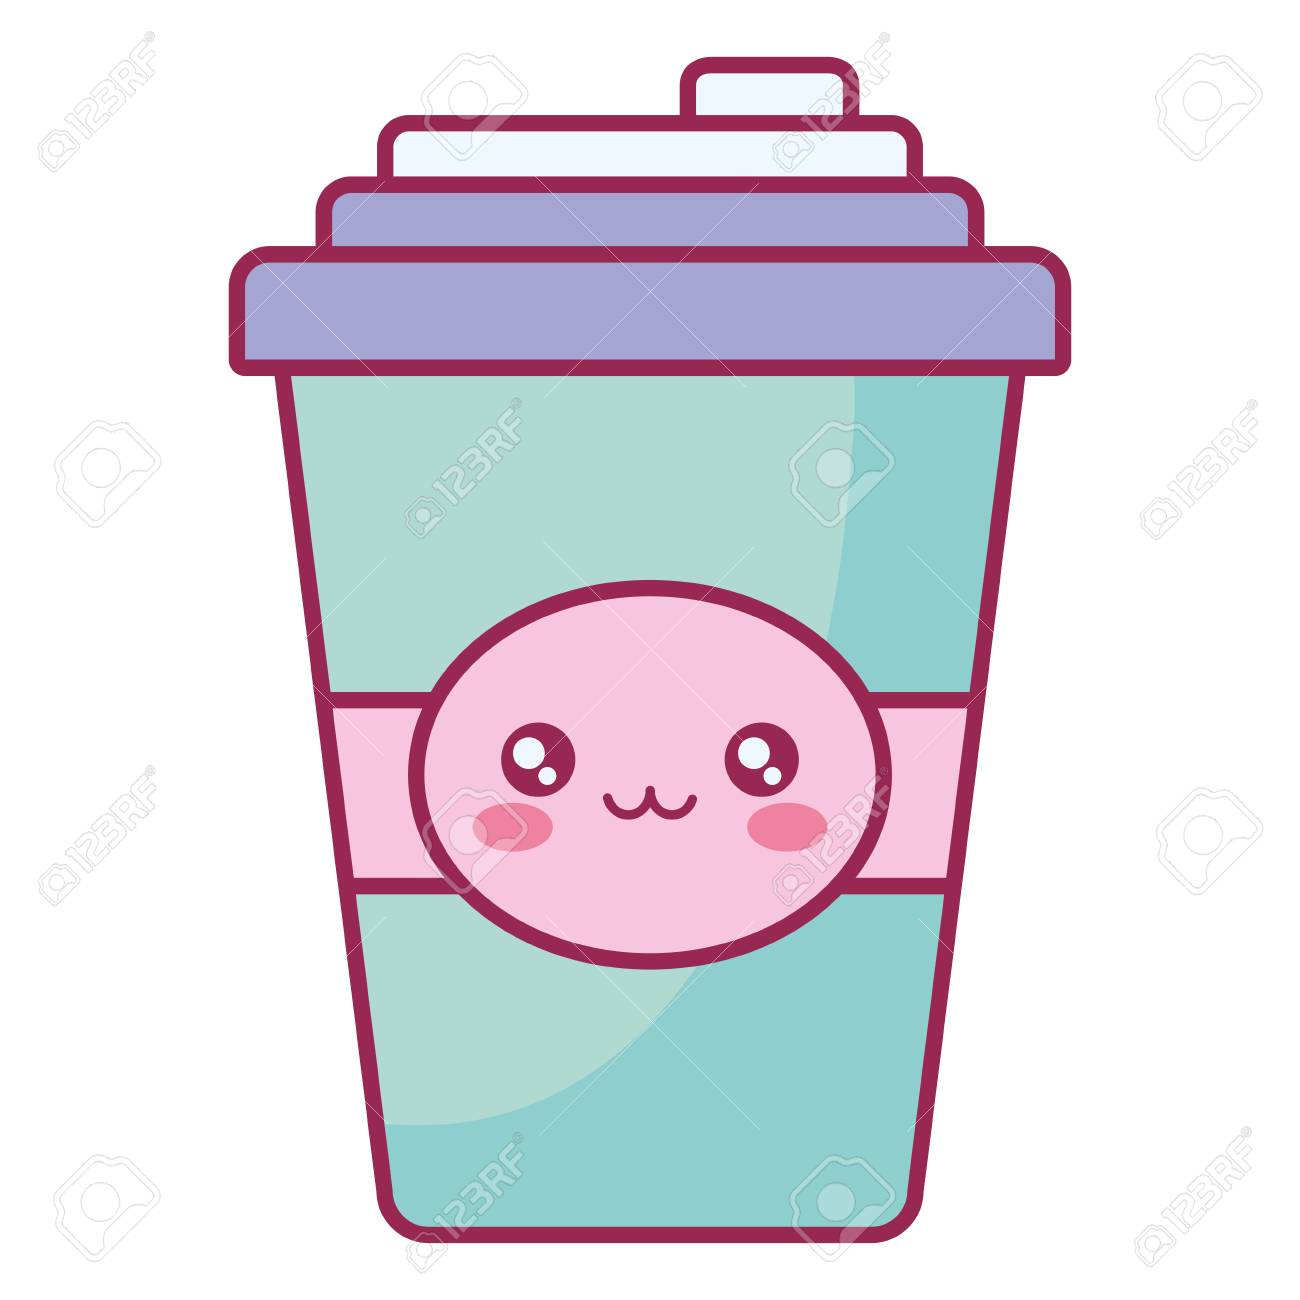 plastic cup container character vector illustration design - 114186360